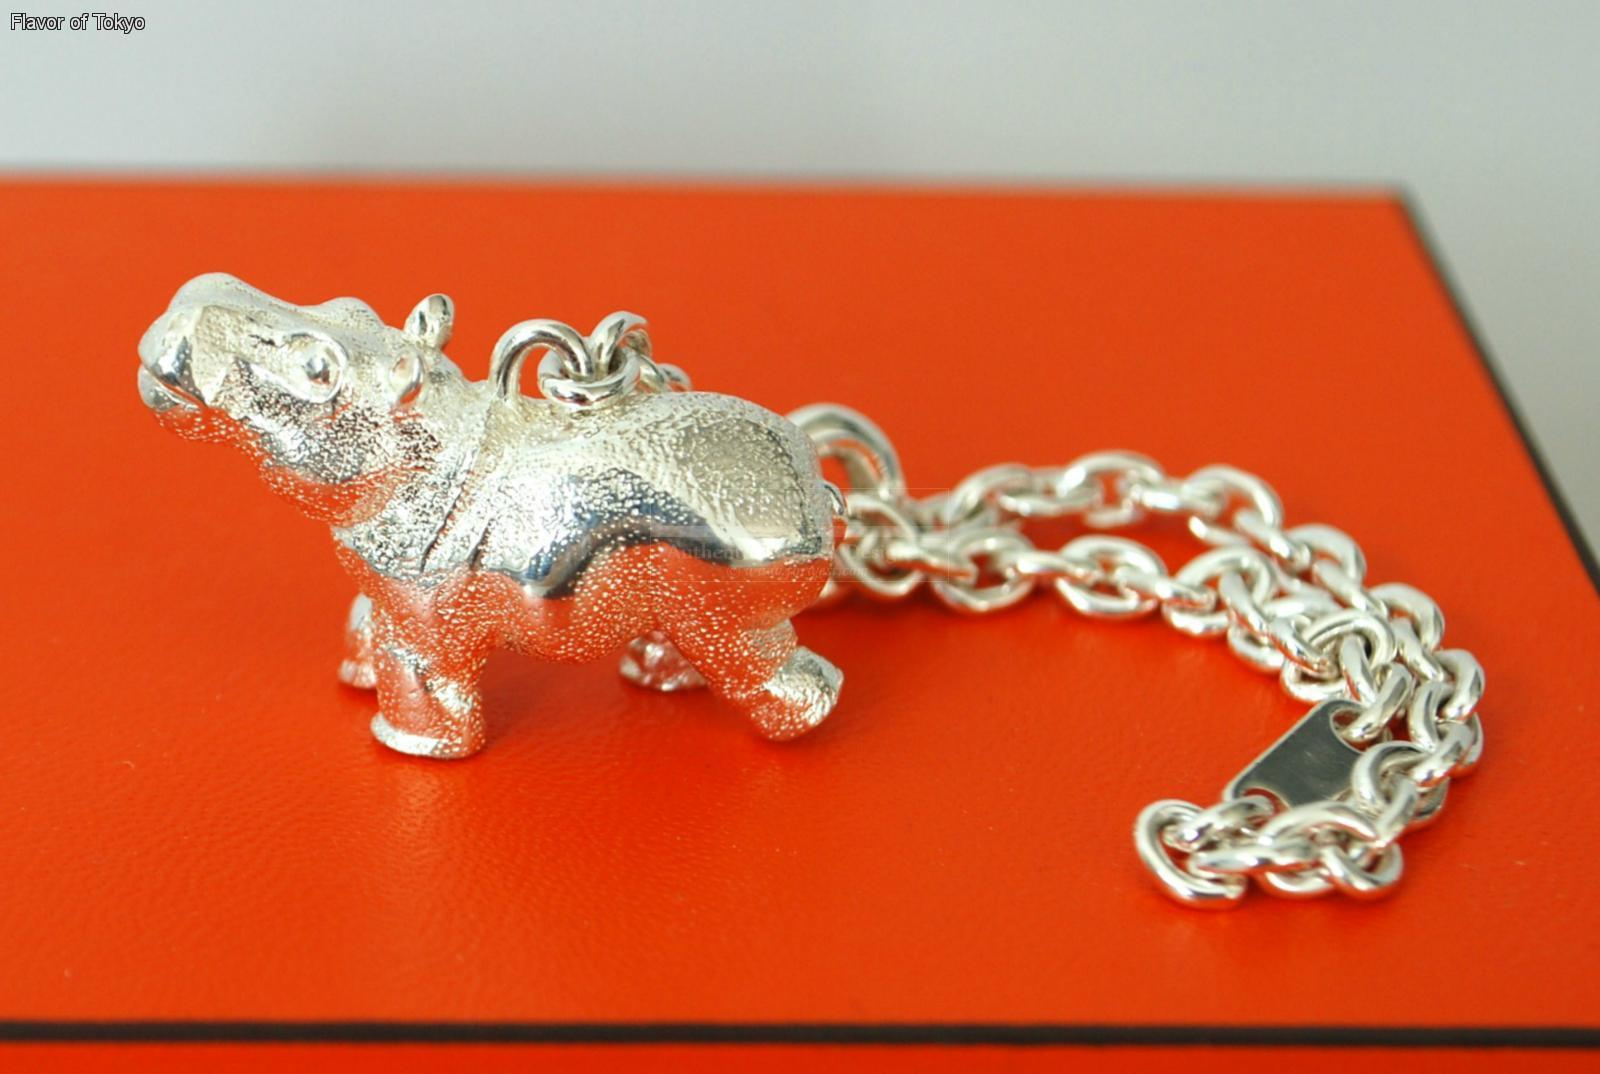 Authentic Hermes Hippo Key Ring Bag Charm Sterling Silver 925 Ltd